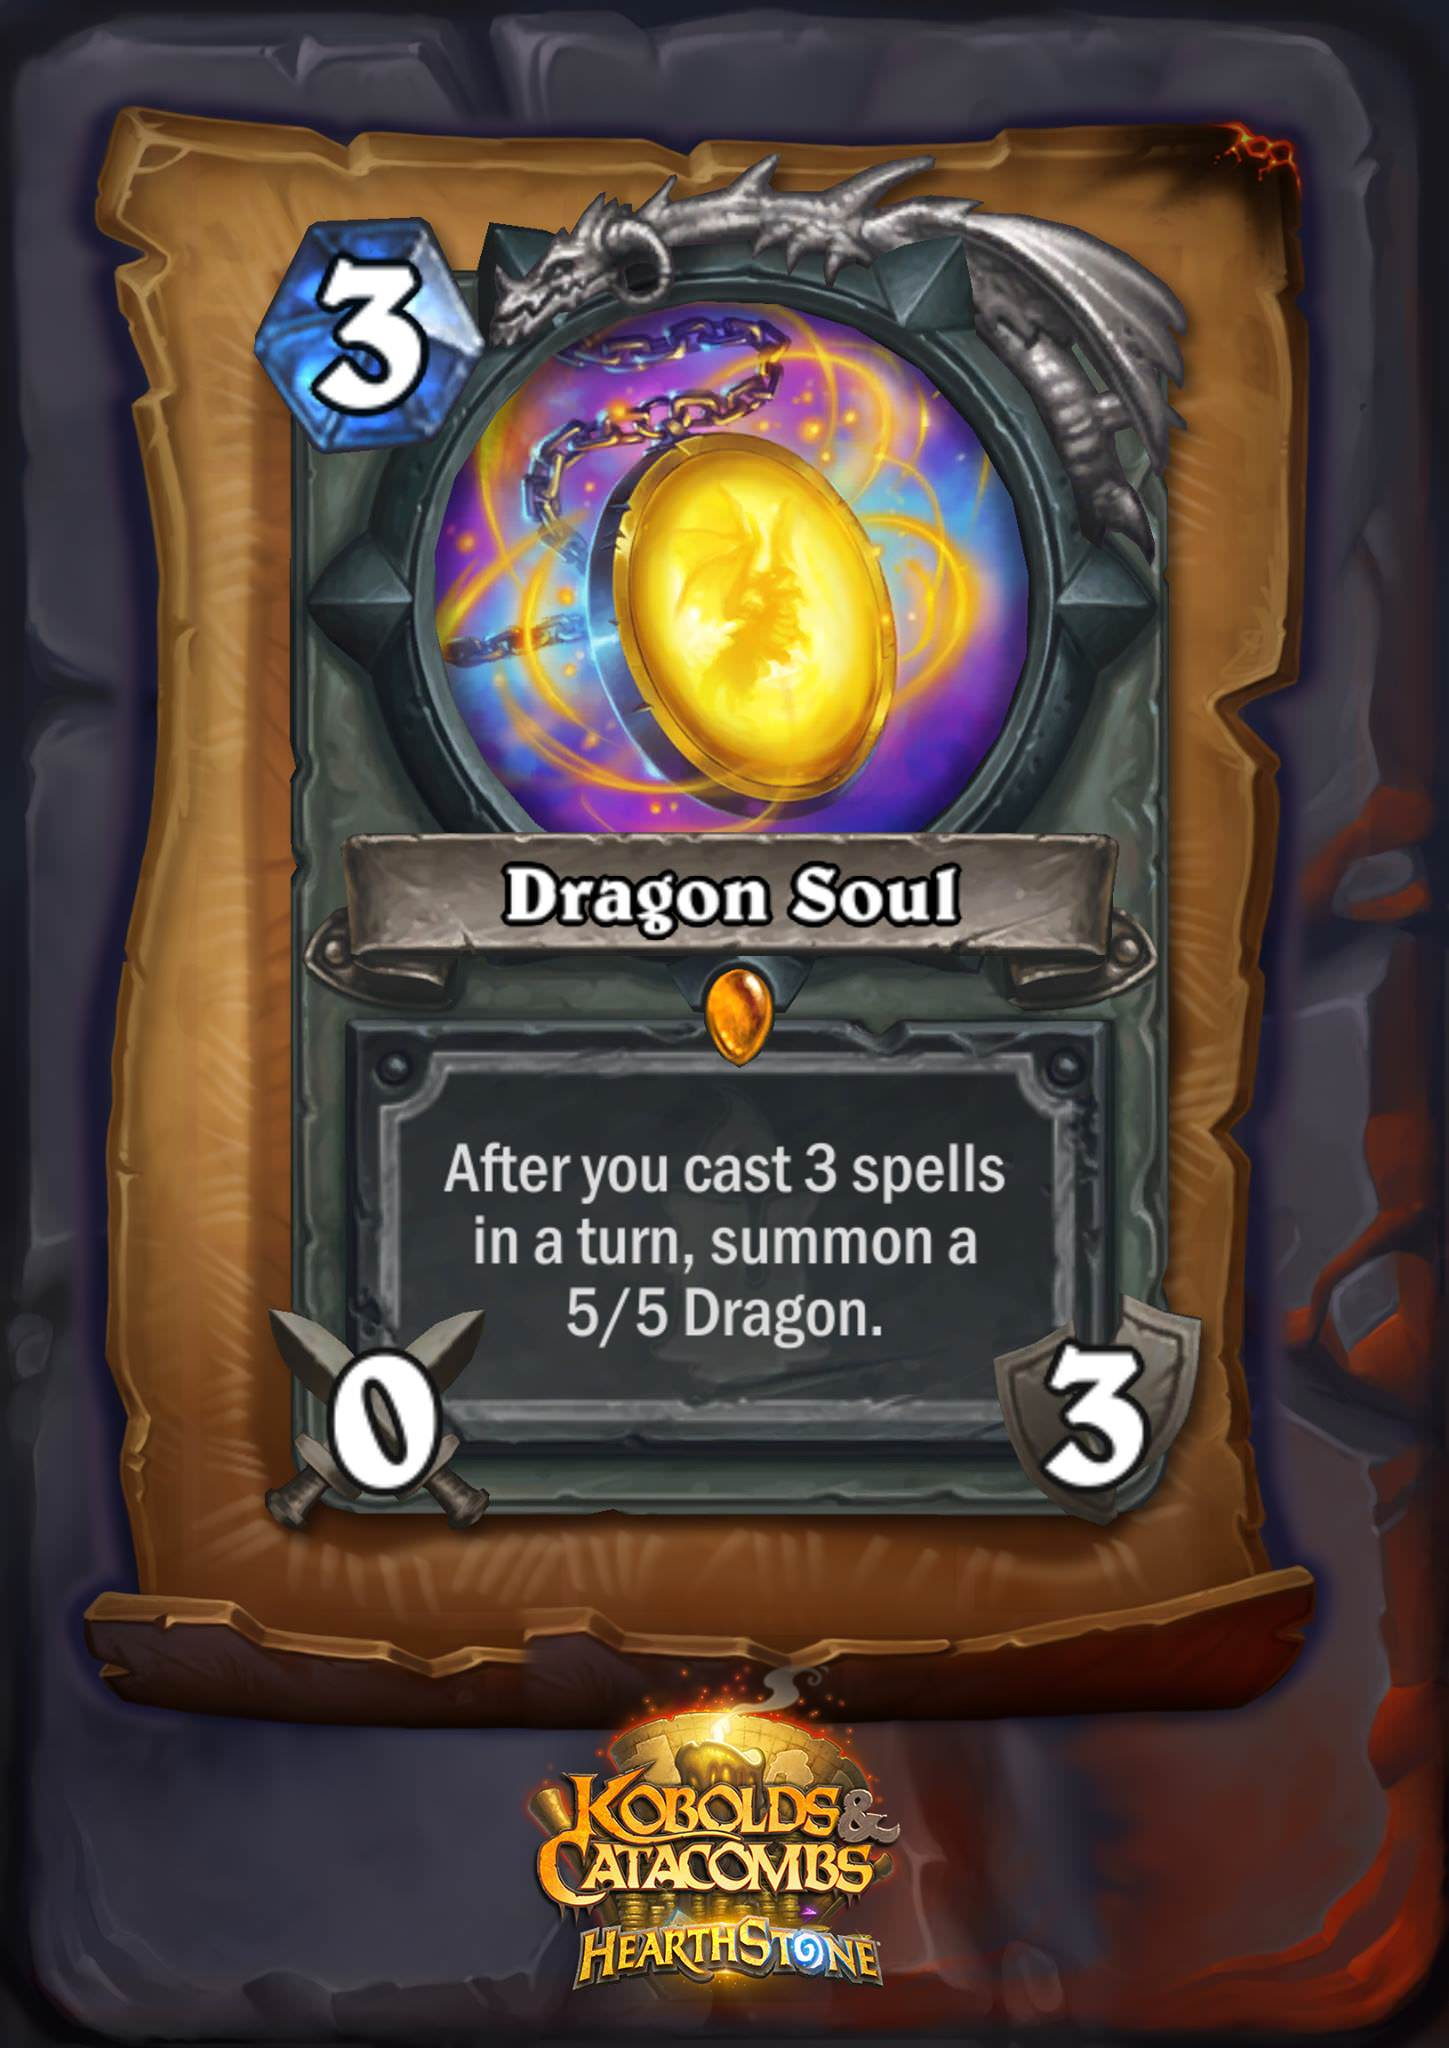 """Dragon Soul is a 3 mana 0/3 weapon. The card text reads: """"After you cast 3 spells in a turn, summon a 5/5 Dragon."""""""